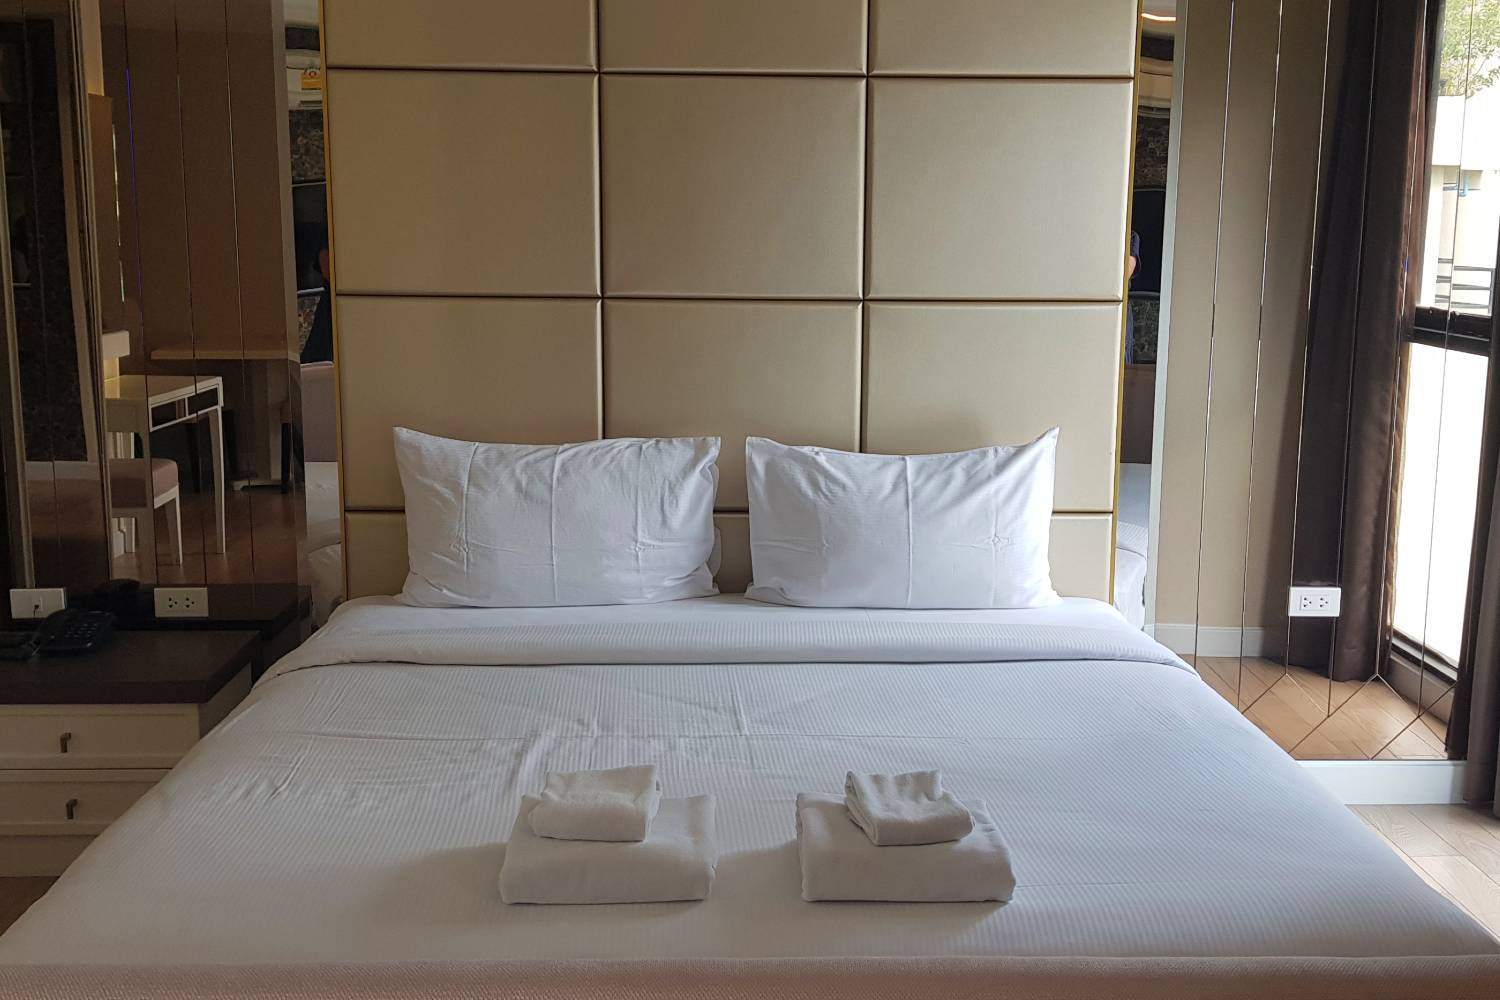 Tweepersoonskamer (Superior Room) van Hope Land Hotel Sukhumvit 8 in Bangkok, Thailand